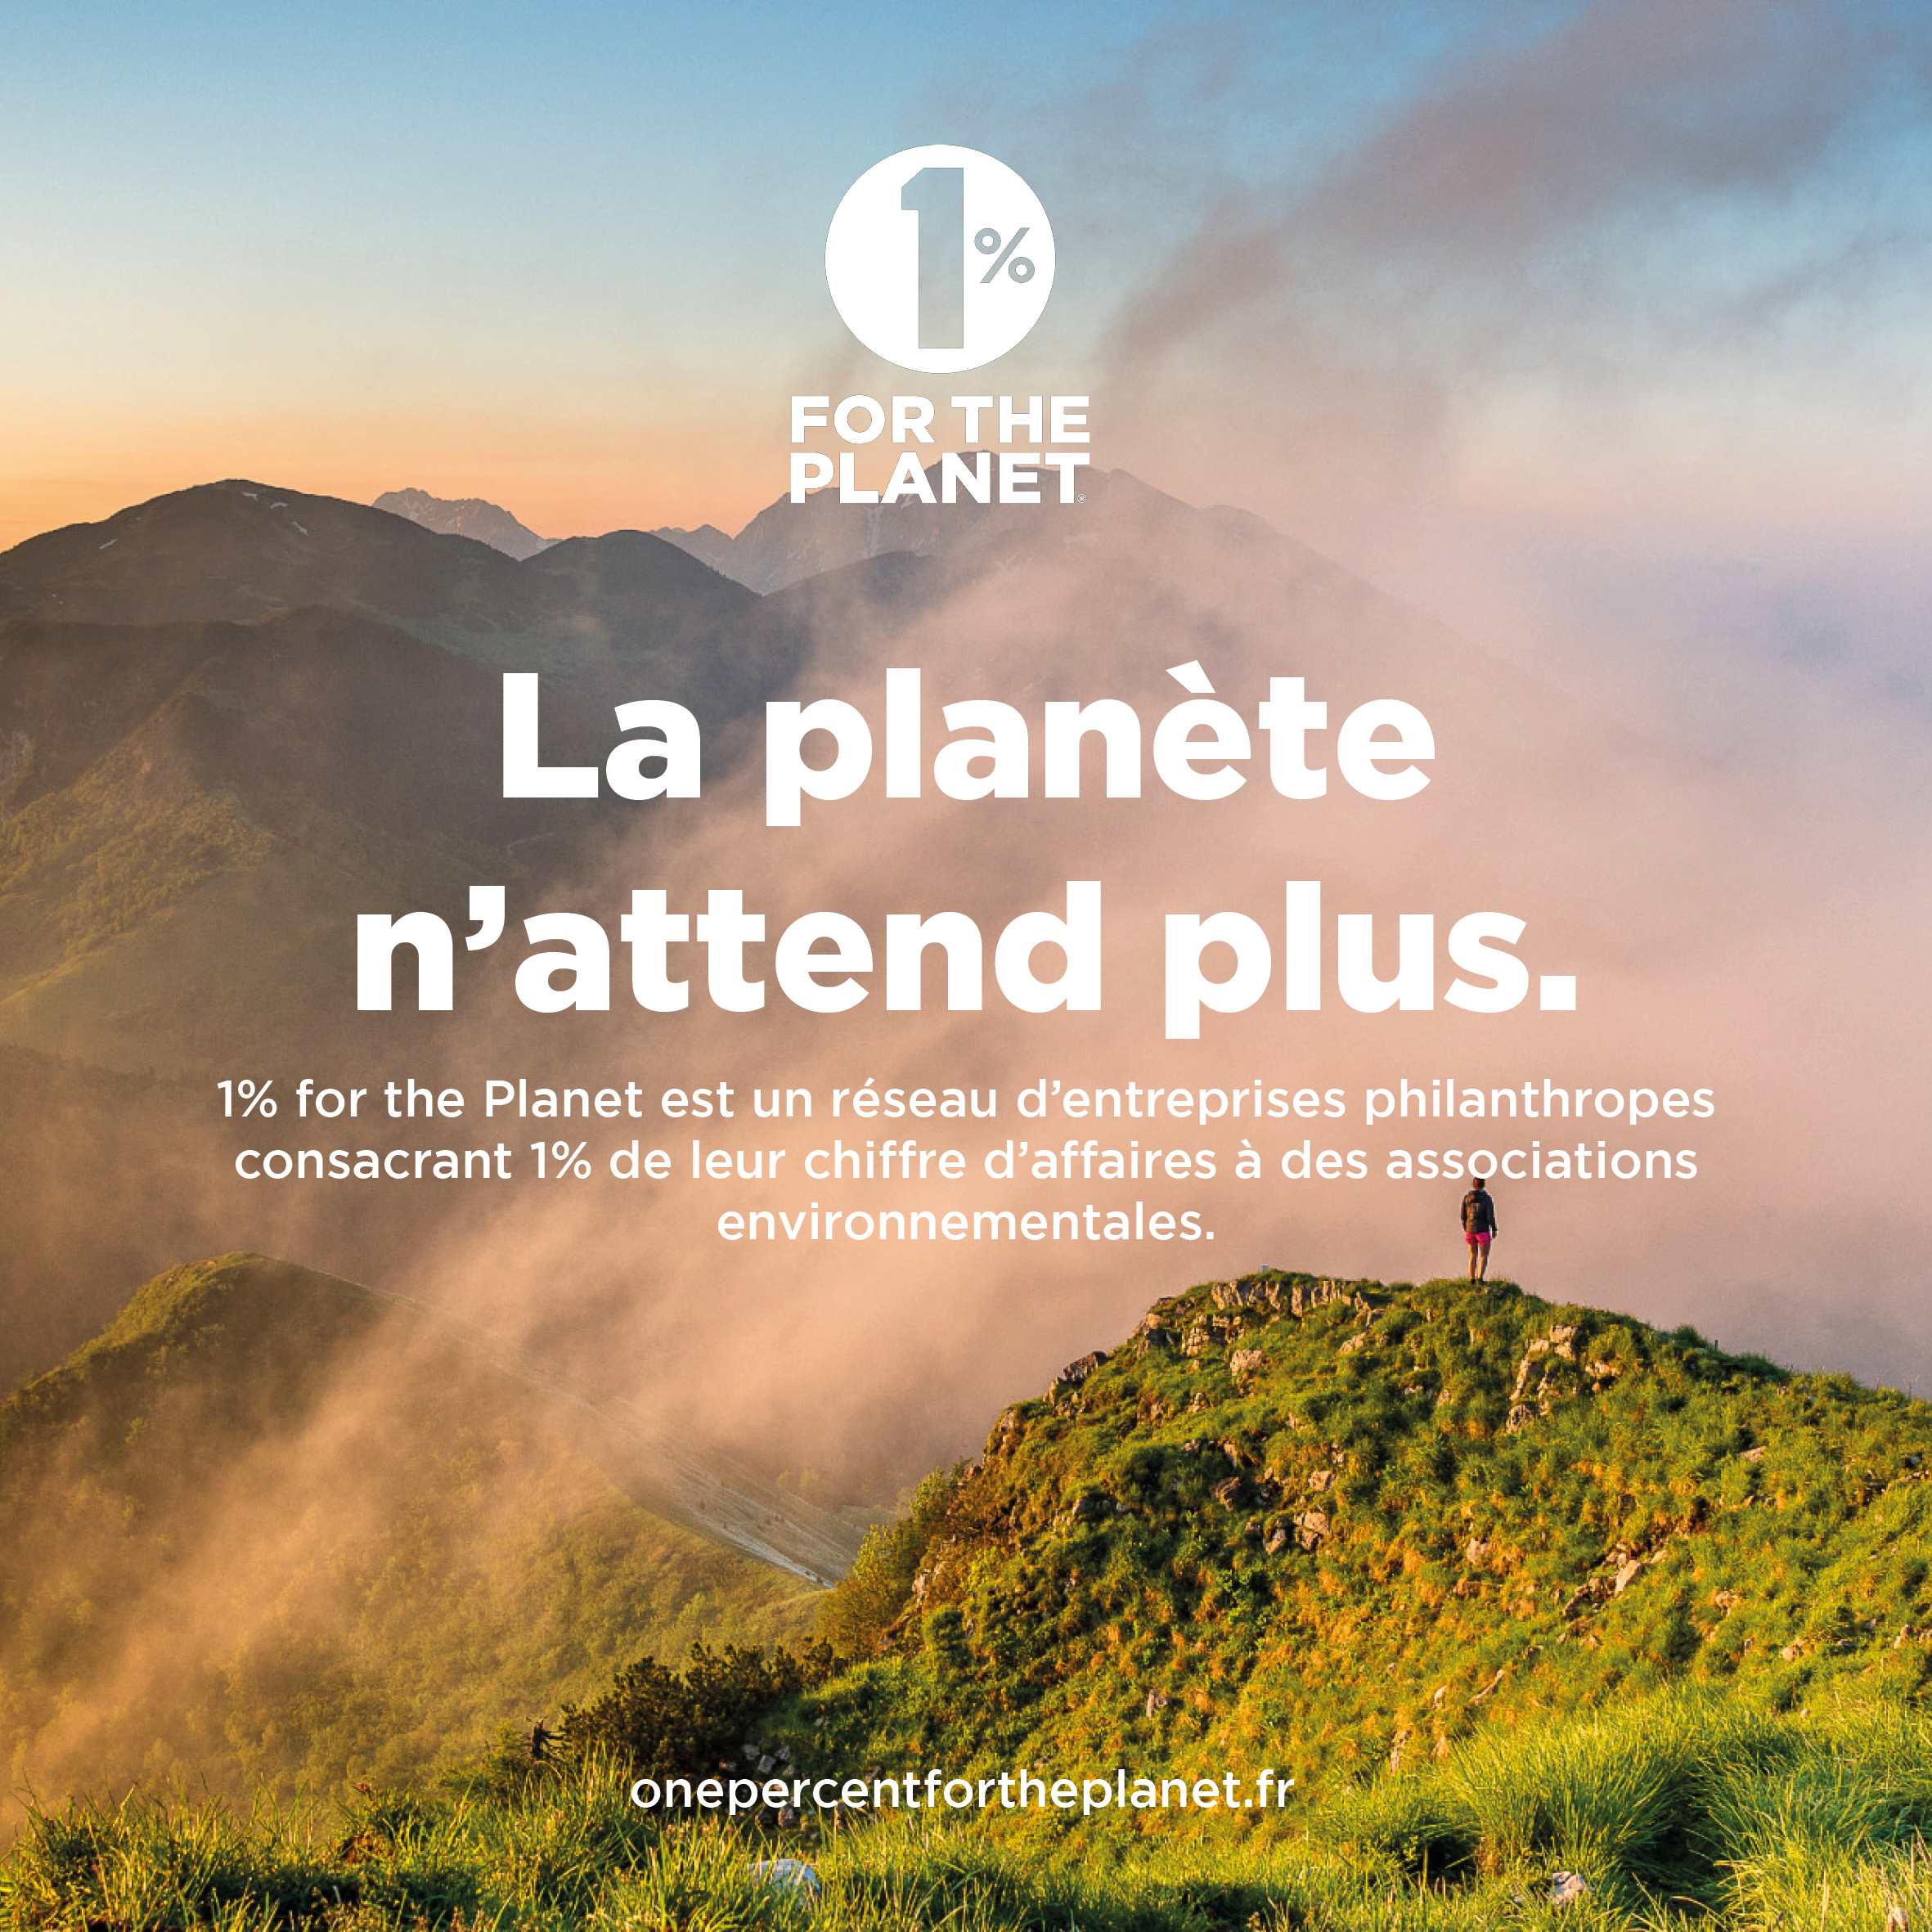 La planète n'attend plus